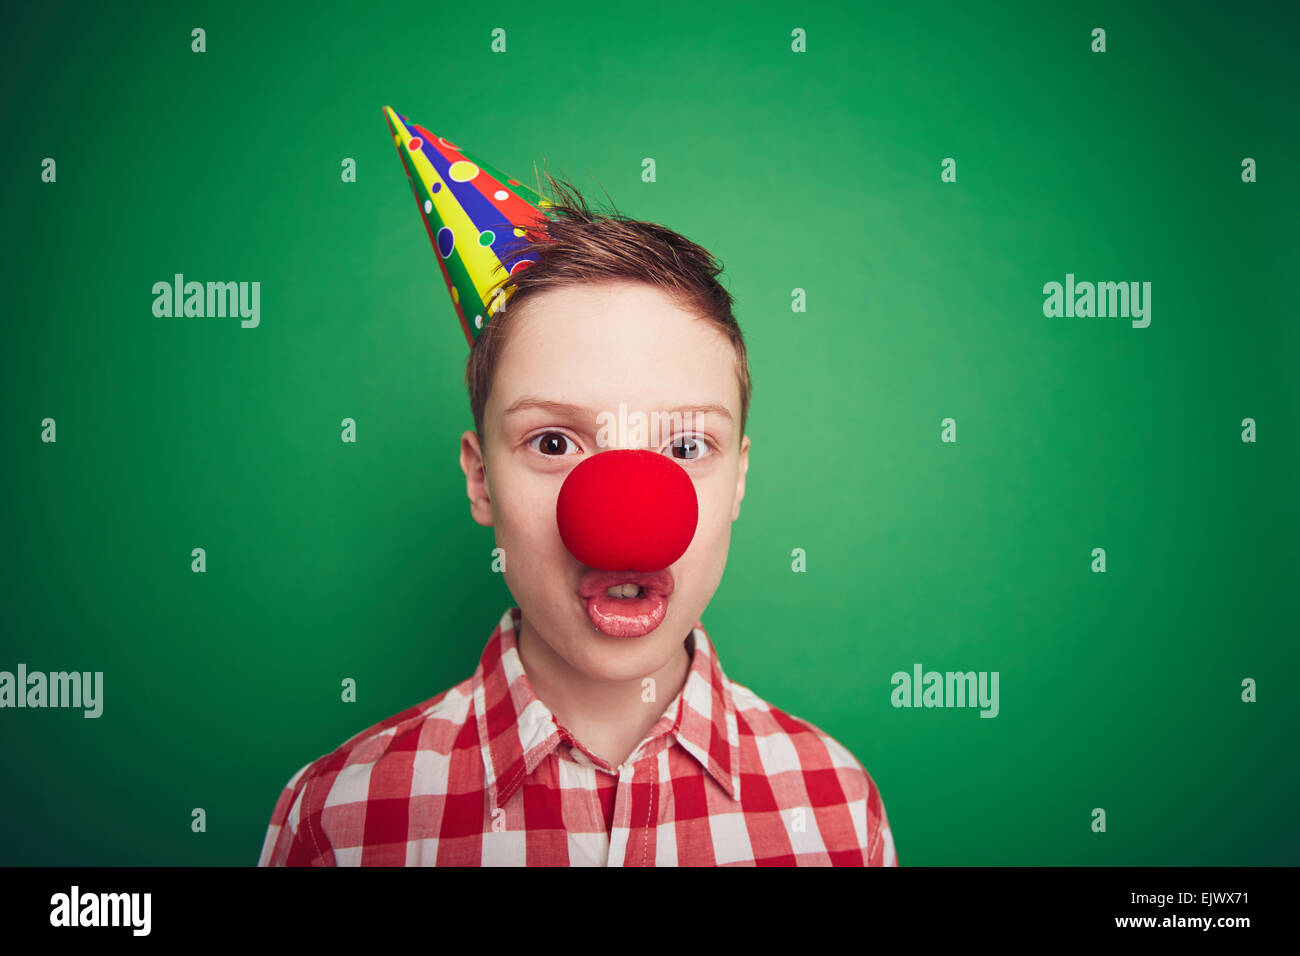 Cute boy with red clown nose grimacing - Stock Image